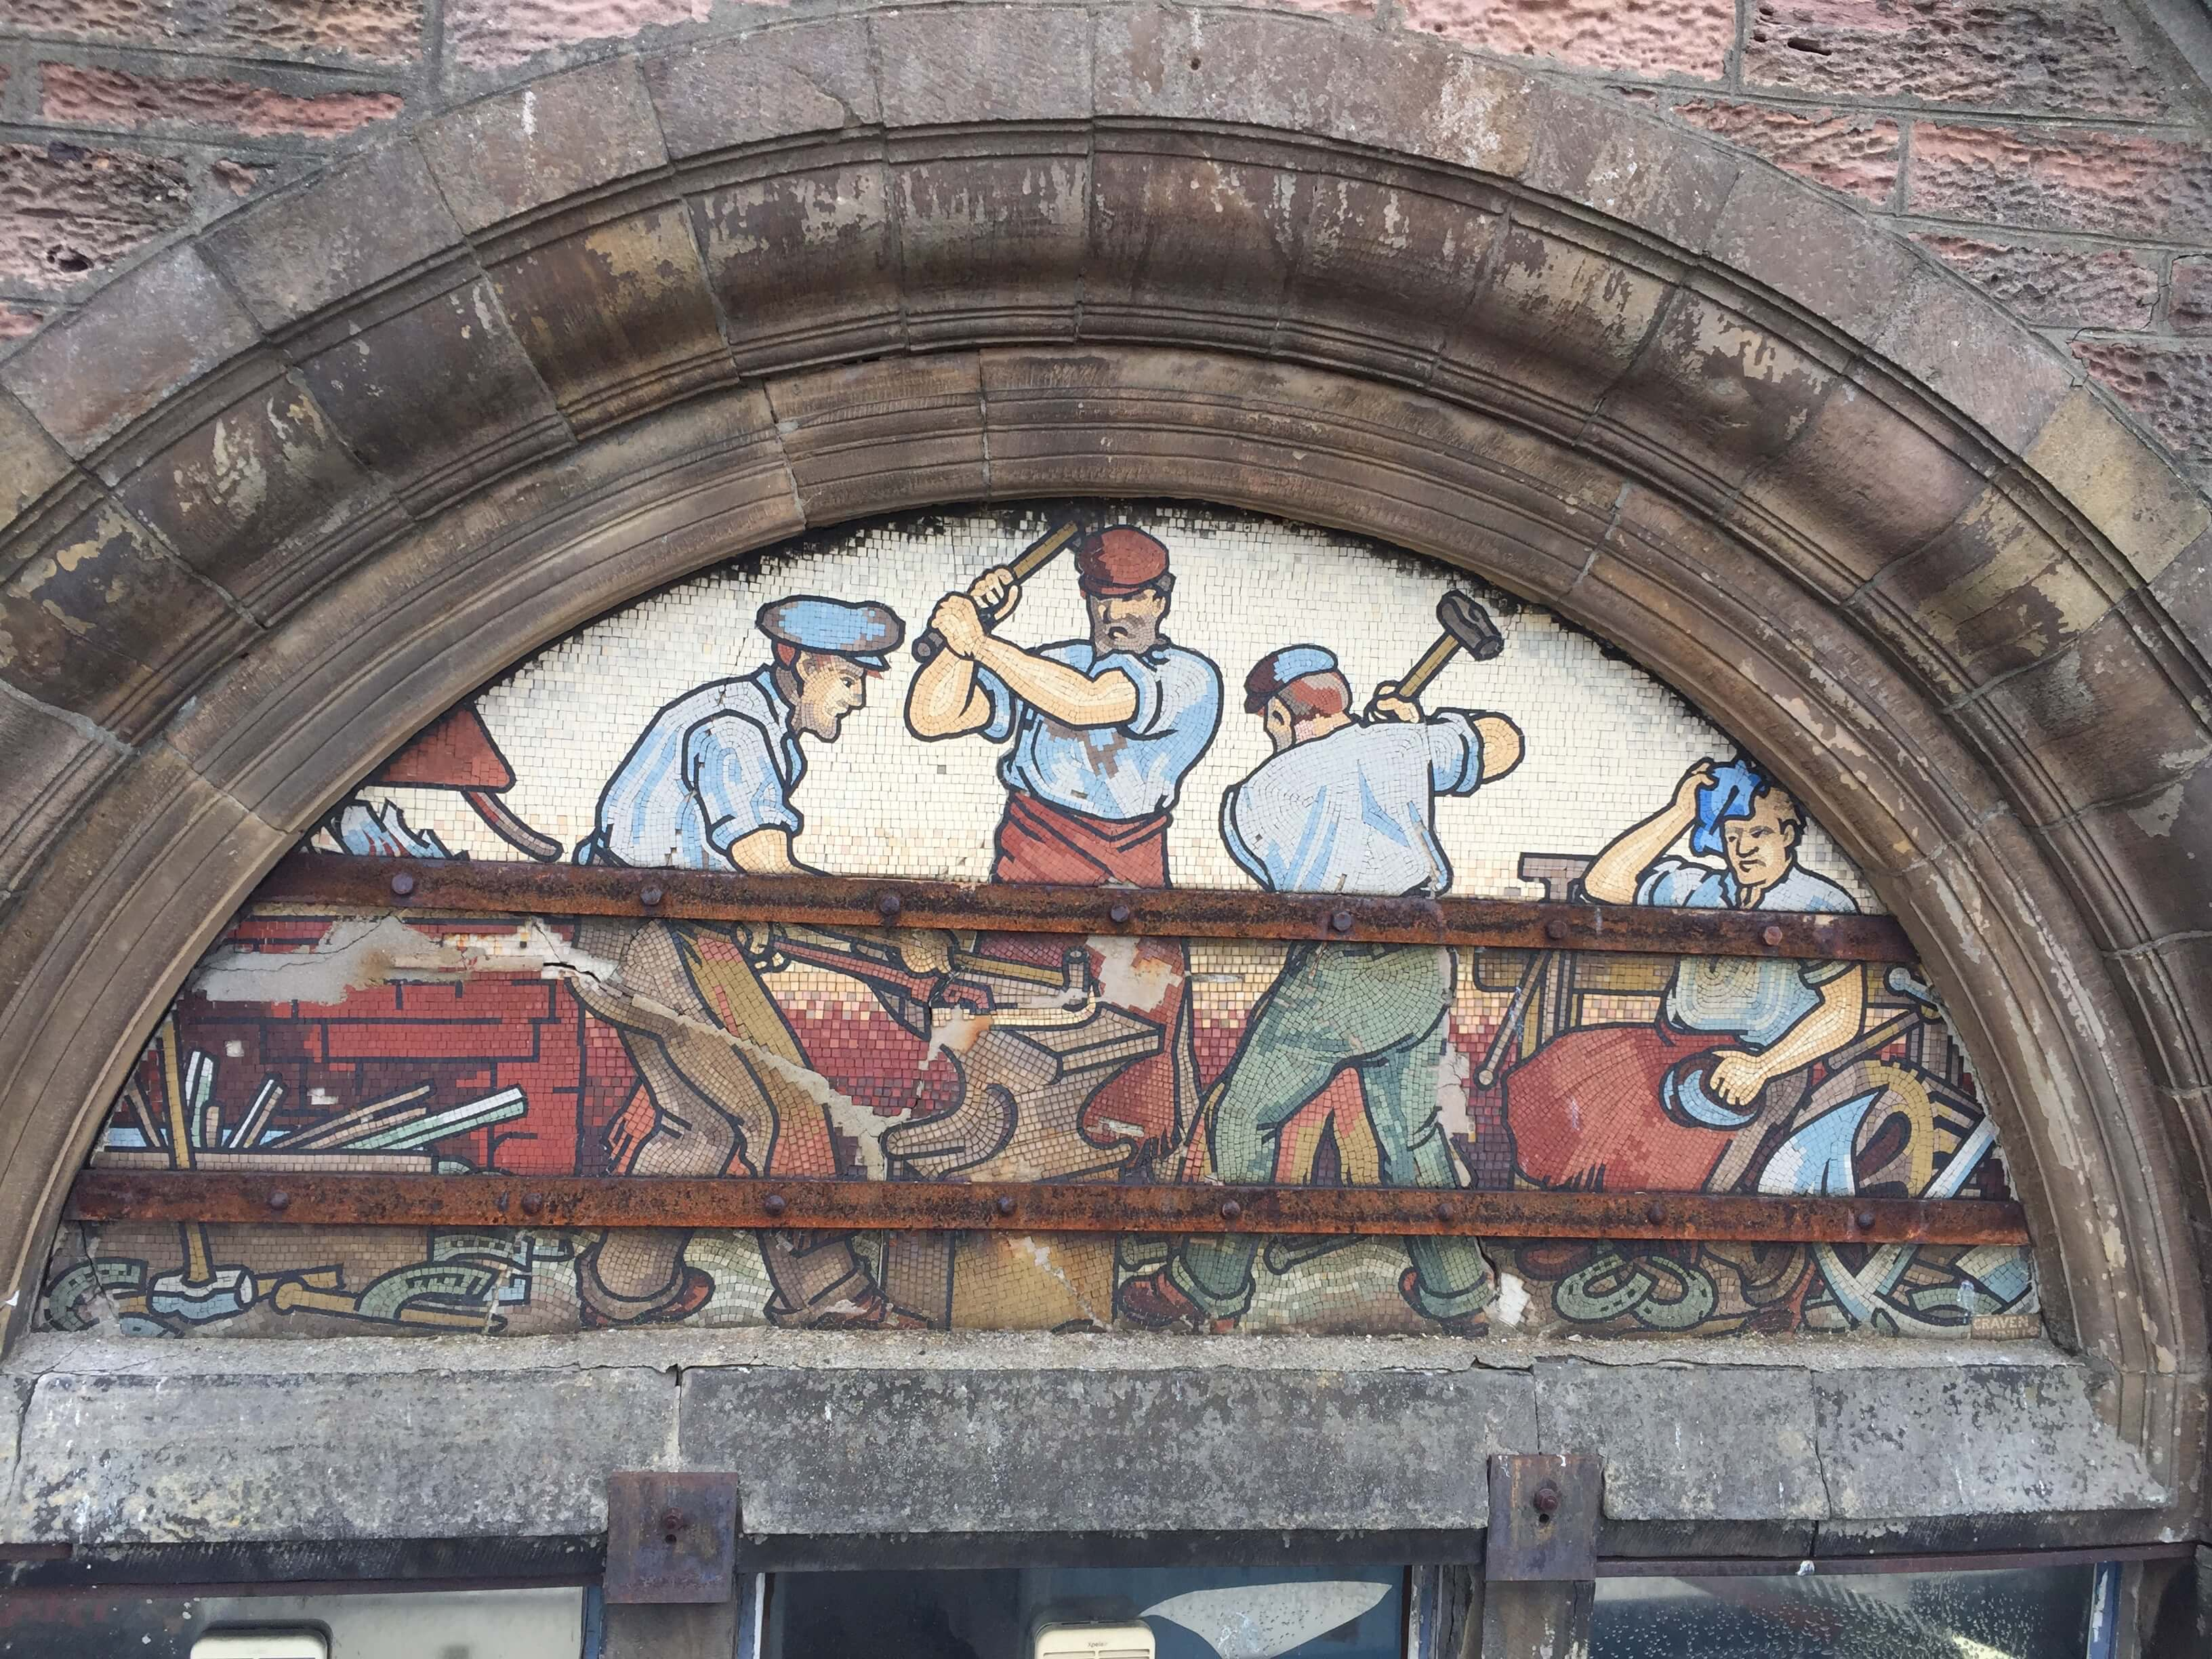 Inverness Mosaic Restoration Project Featured On BBC News